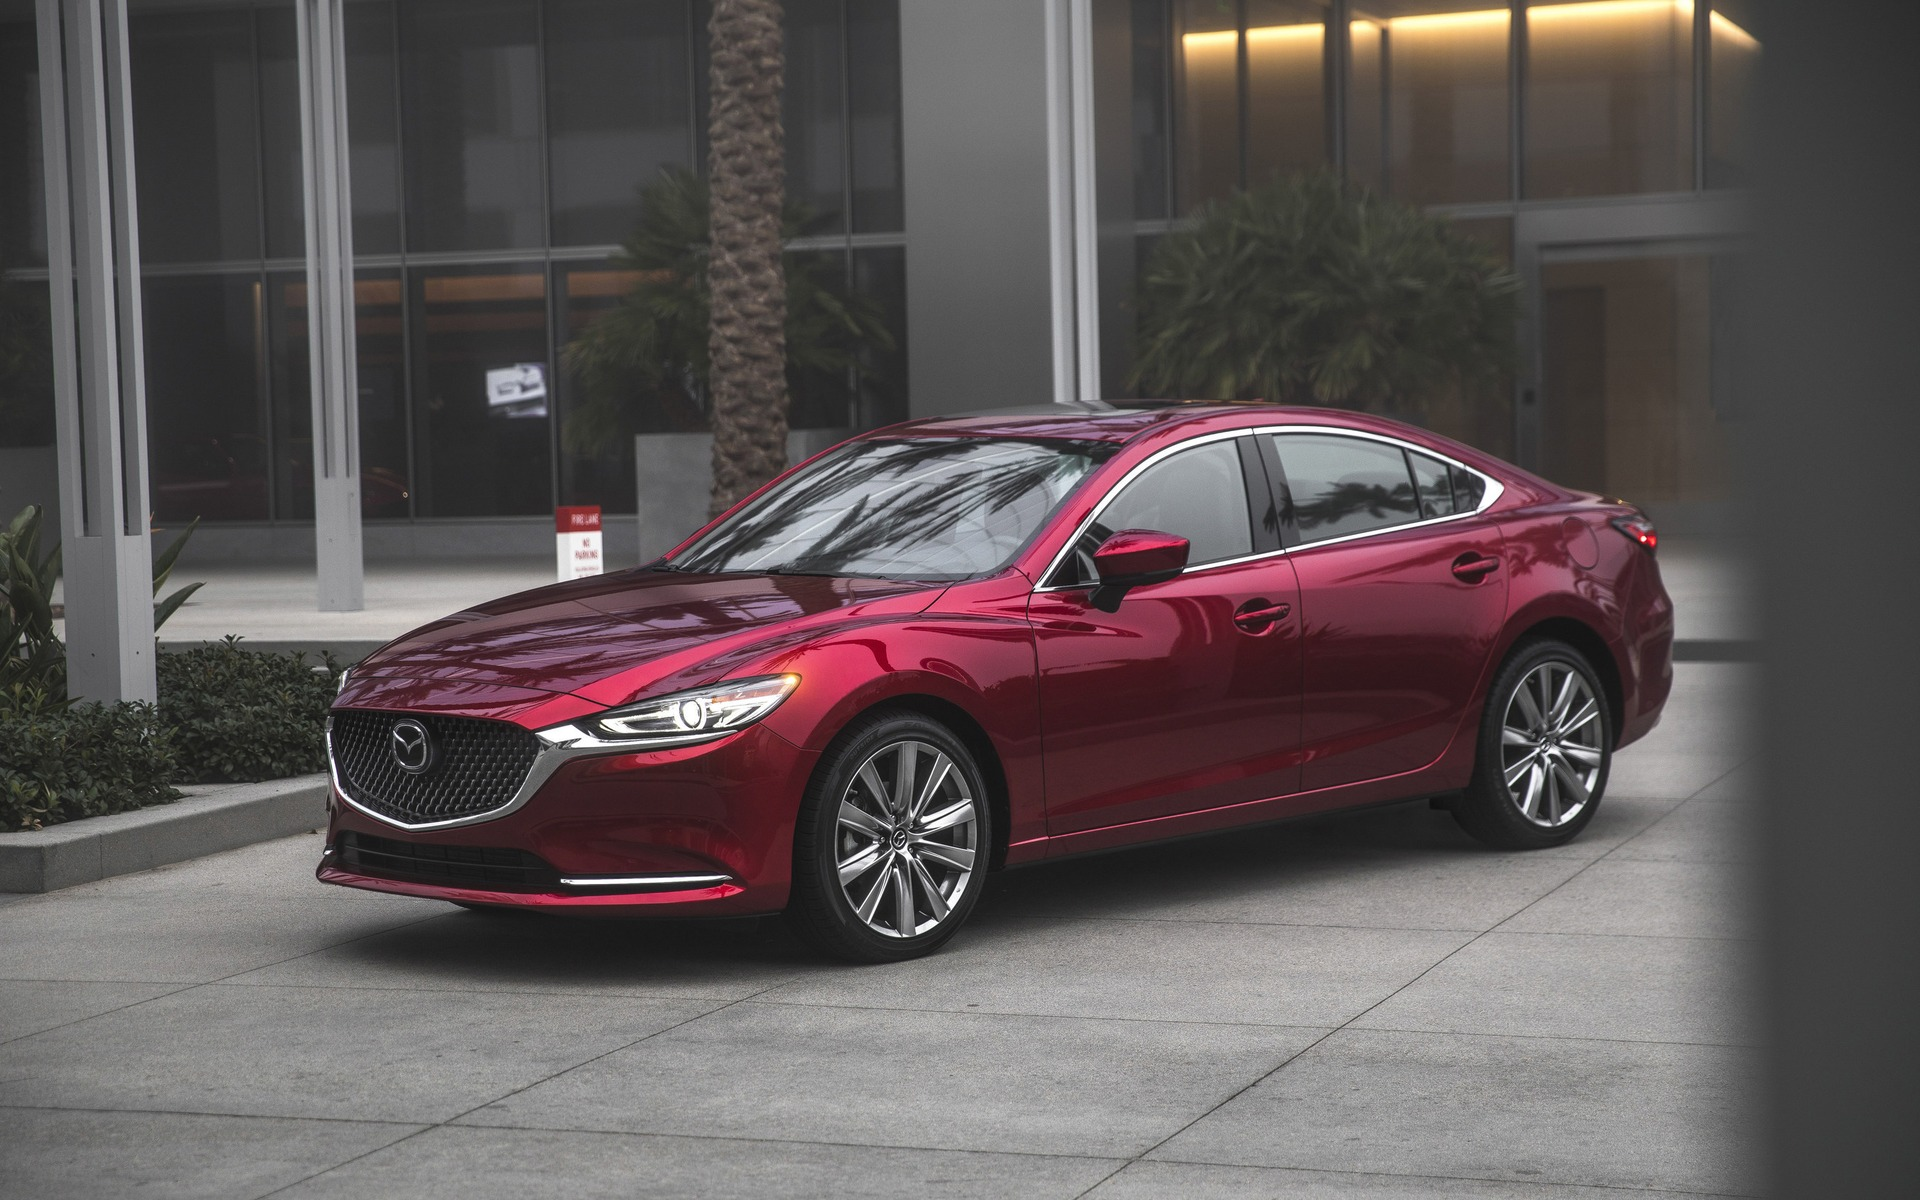 Mazda Mazda6: Specifications